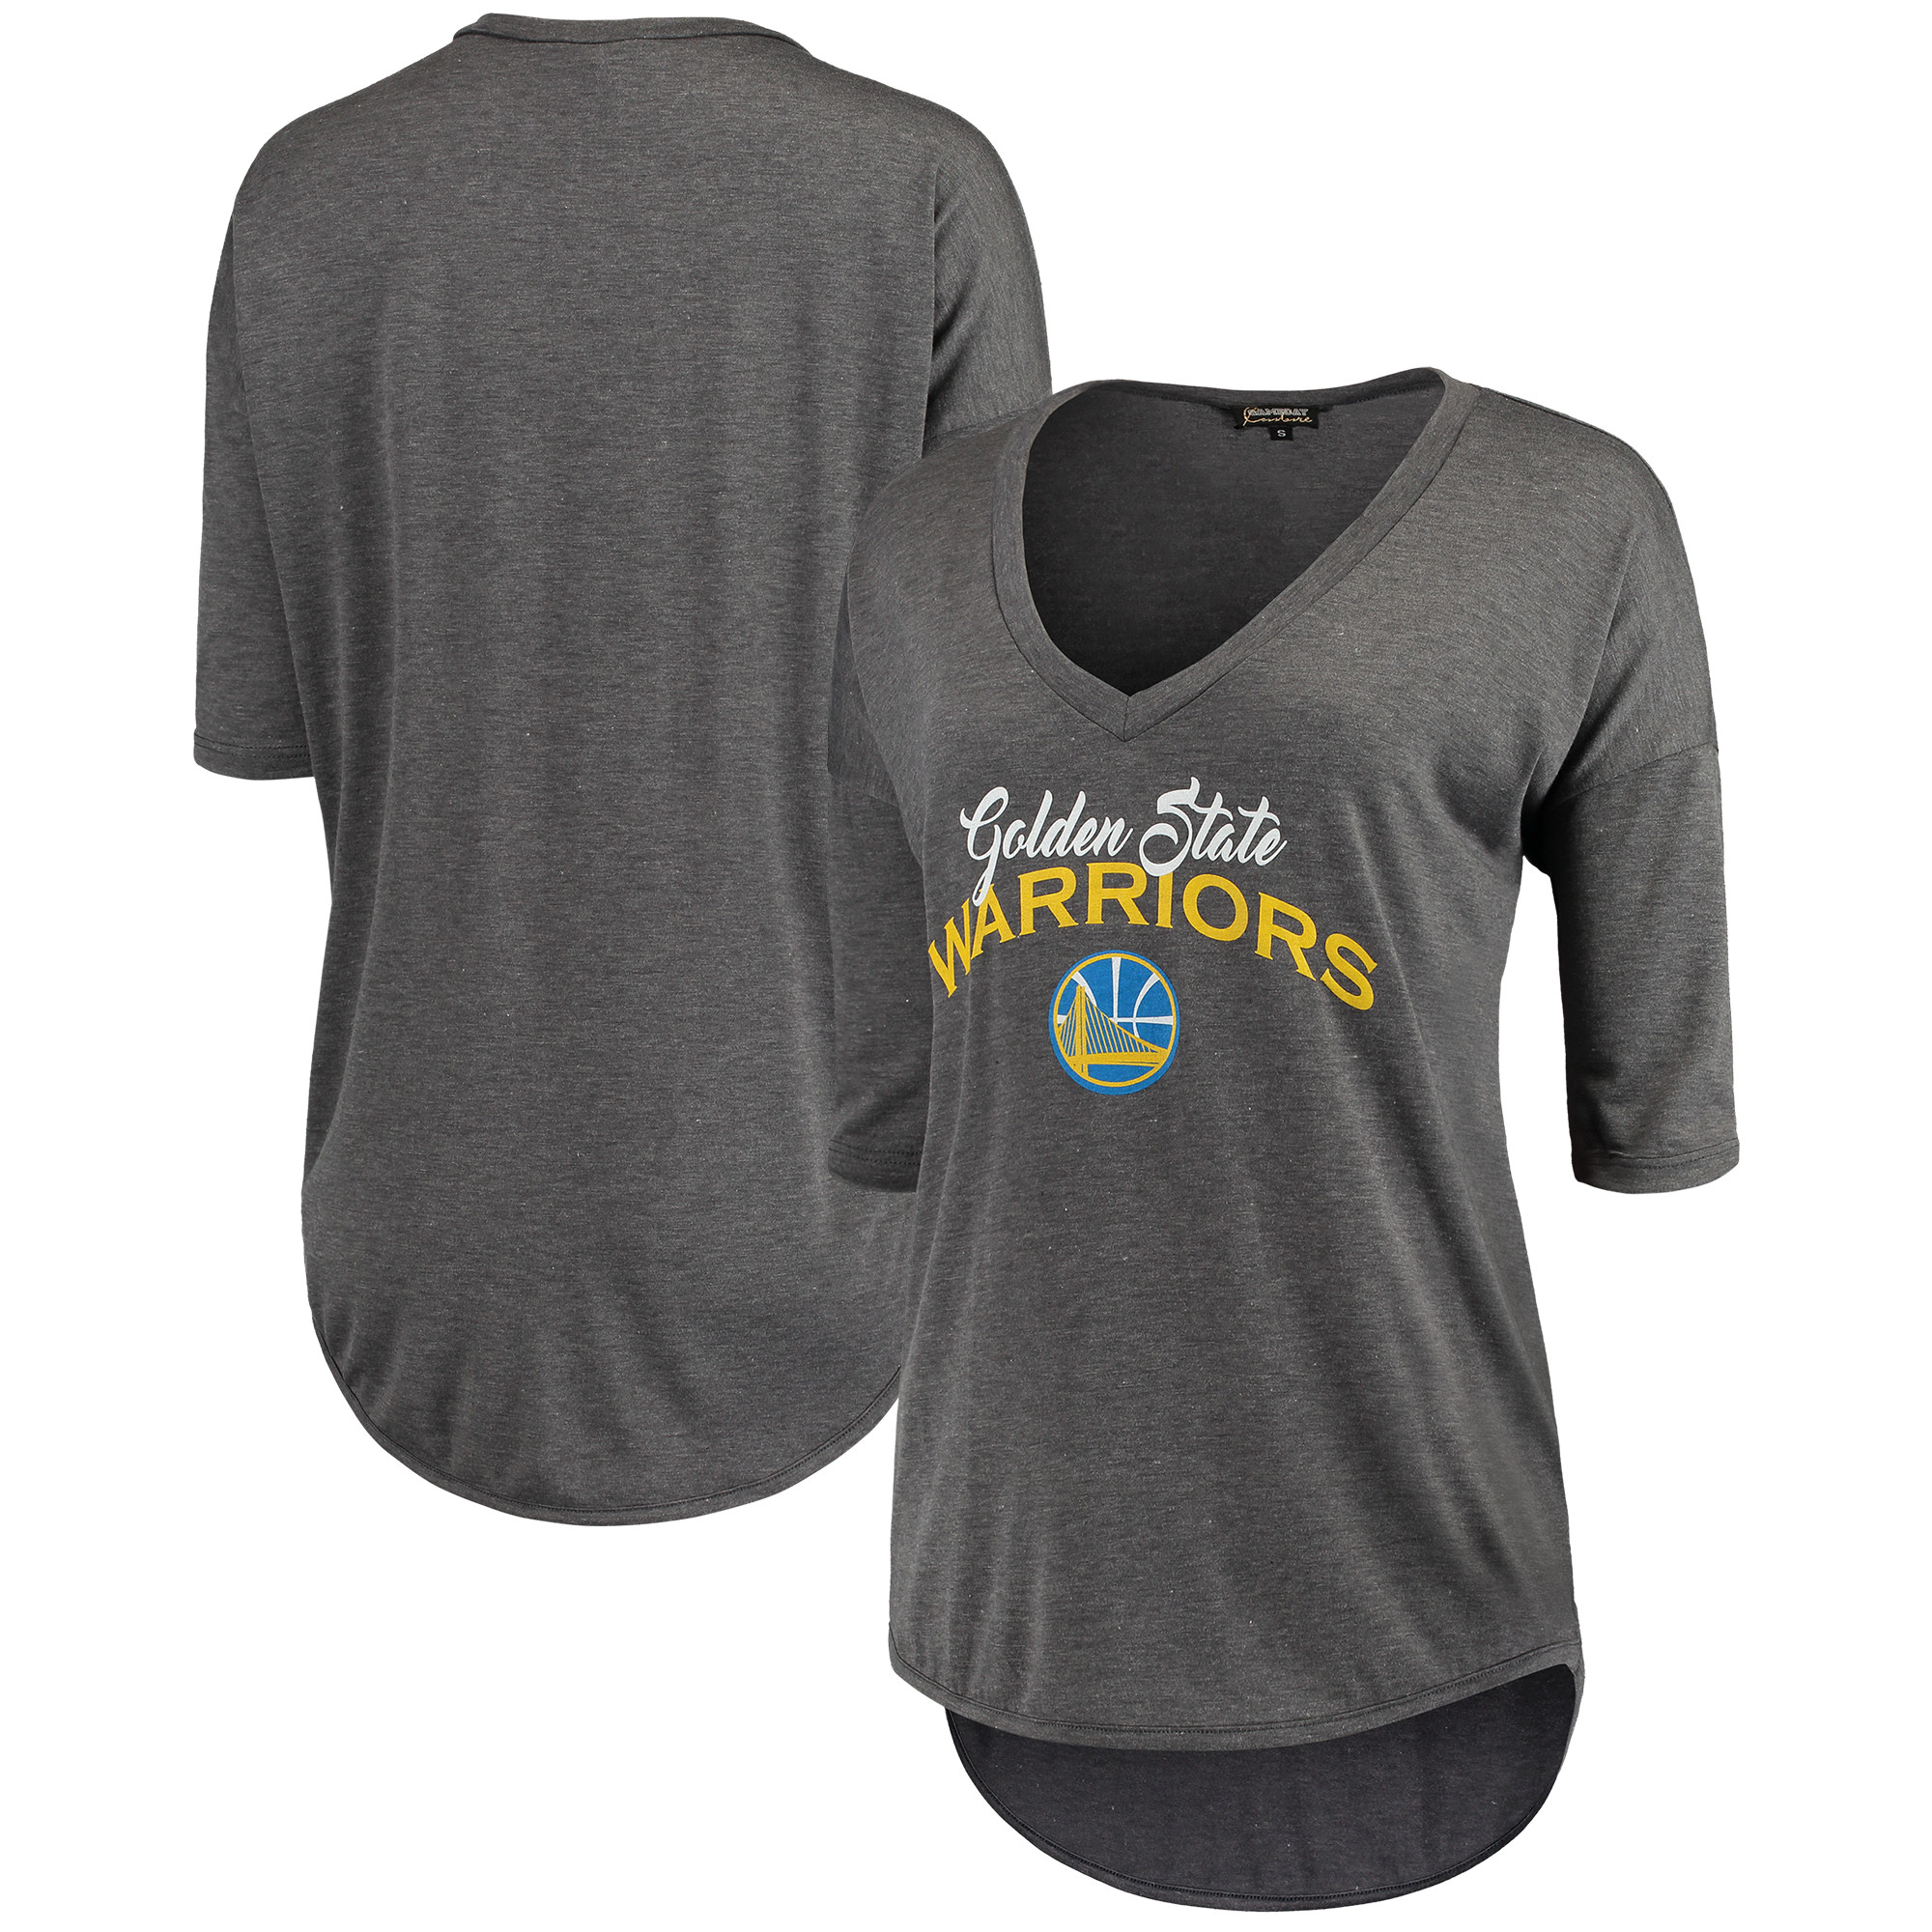 Golden State Warriors Women's Deep V-Neck Tri-Blend Half-Sleeve T-Shirt - Gray